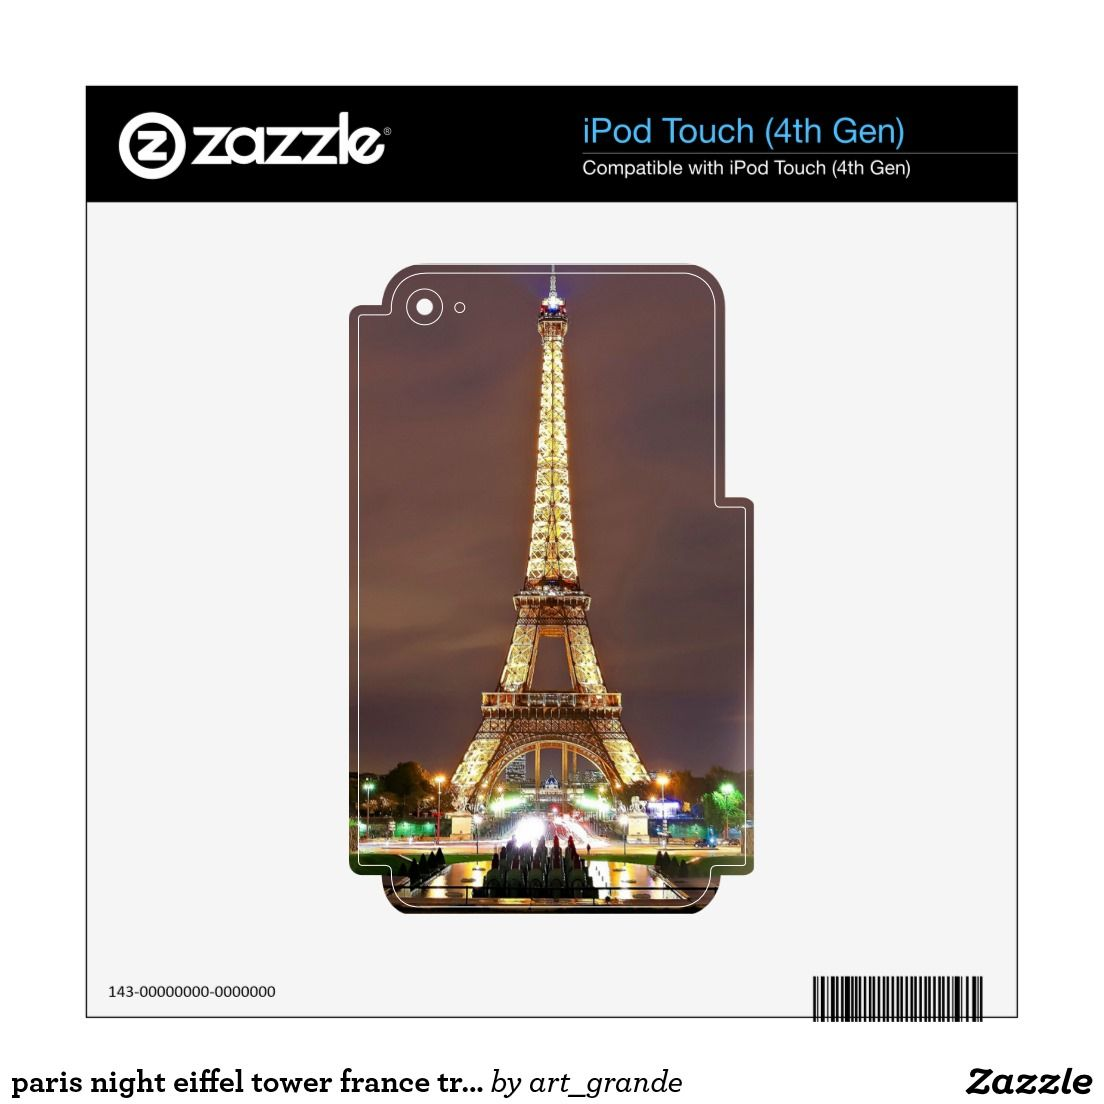 paris night eiffel tower france travel skins for iPod touch 4G